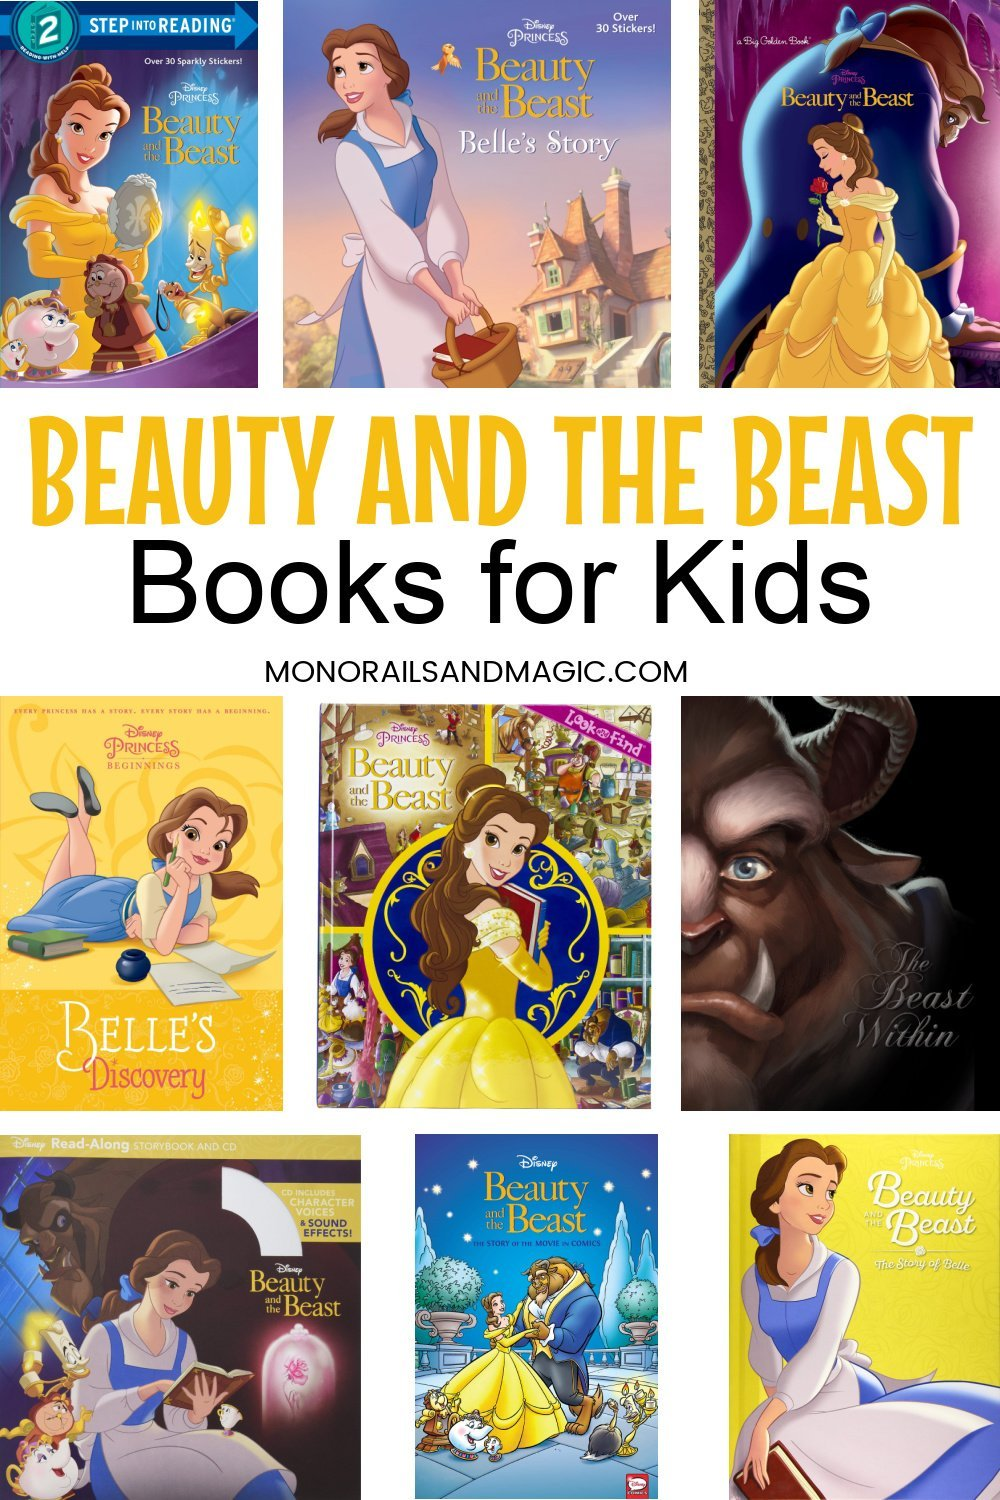 Beauty and the Beast Disney books for kids